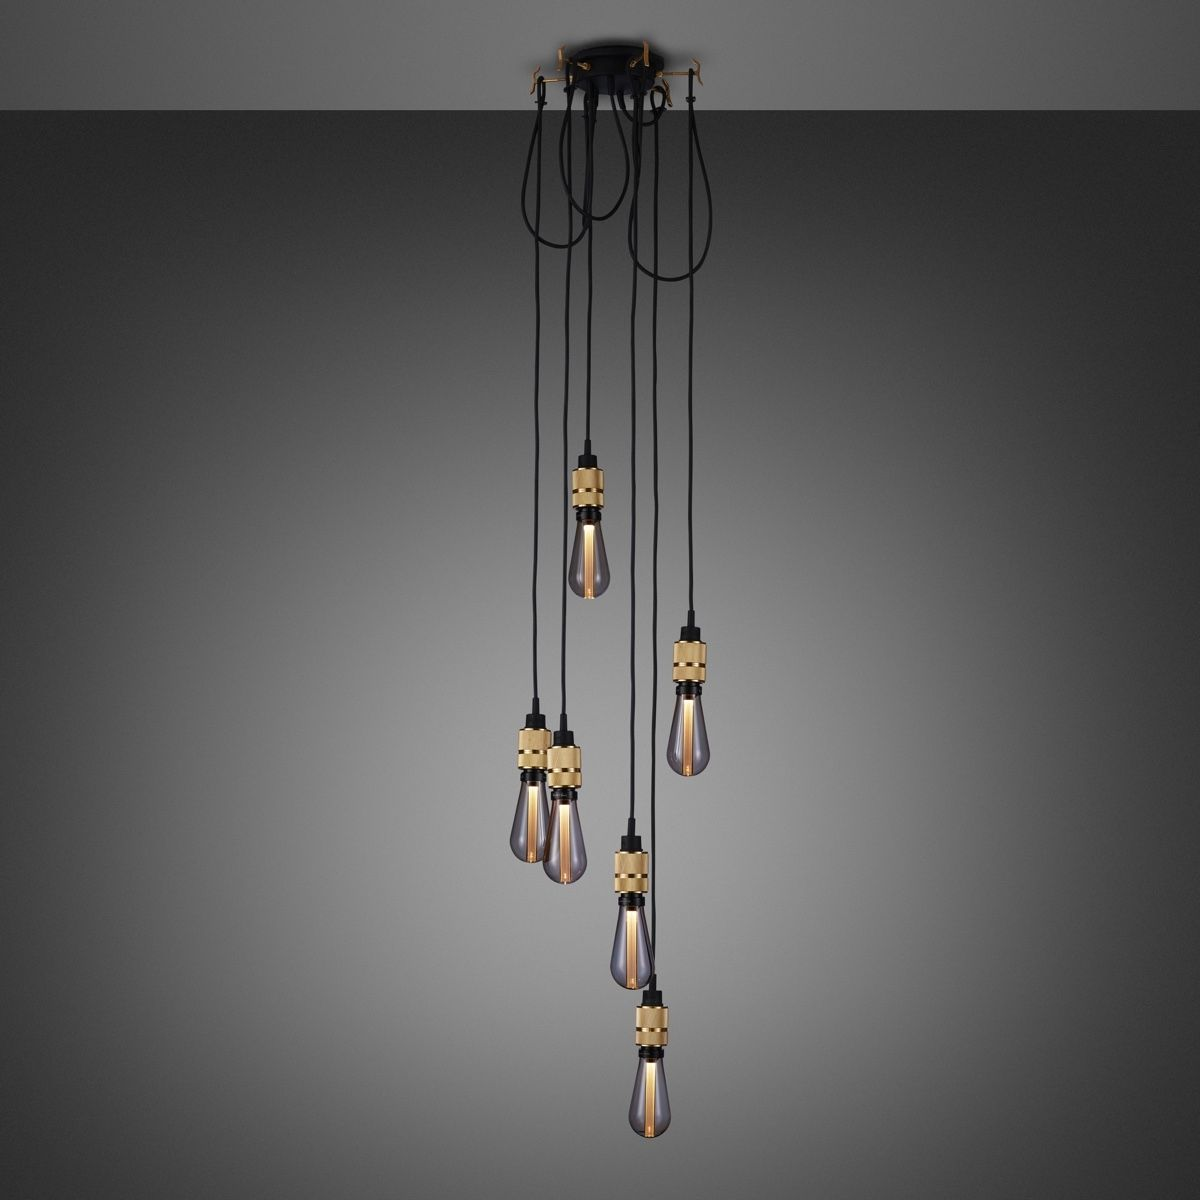 Buster + Punch Hooked Pendant 6.0 Nude